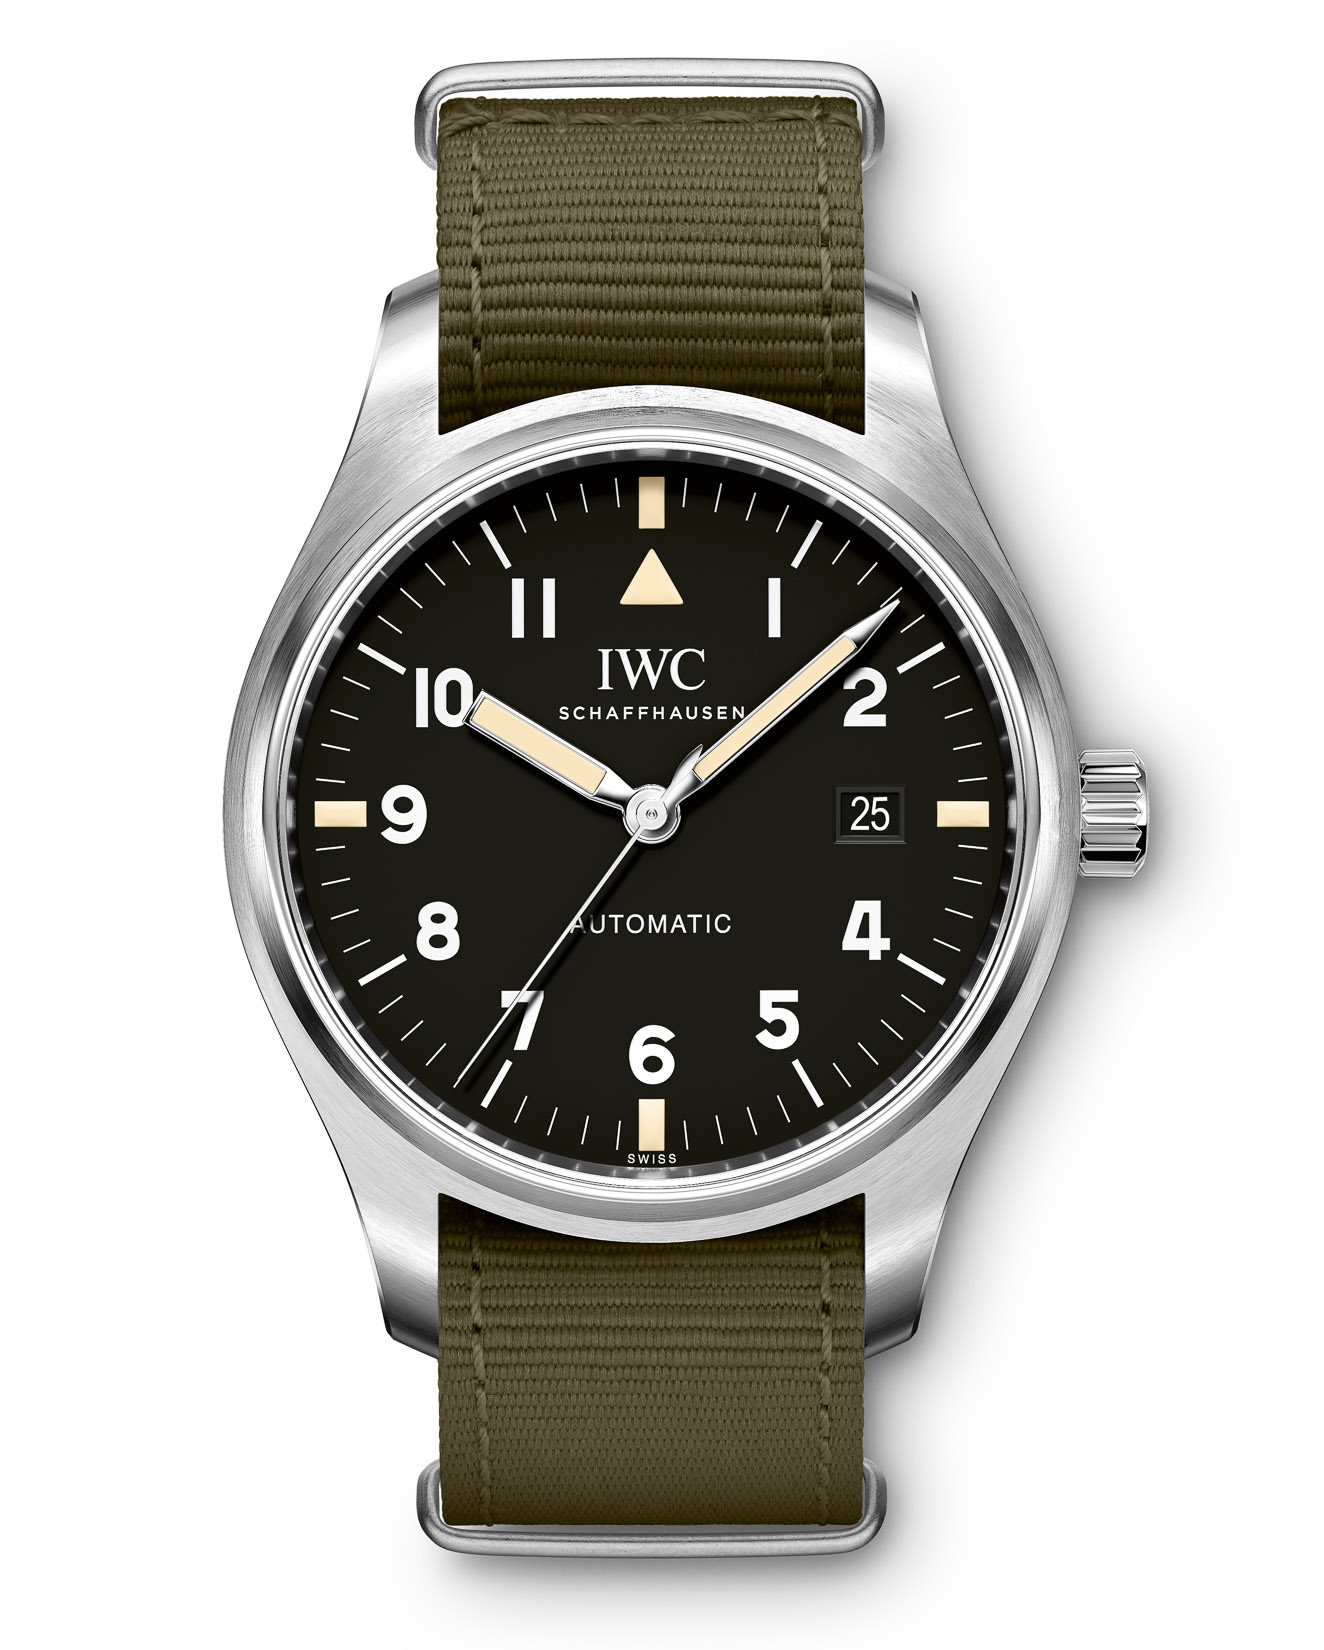 d53bad67eff IWC has a long and legendary history when it comes to pilots  watches